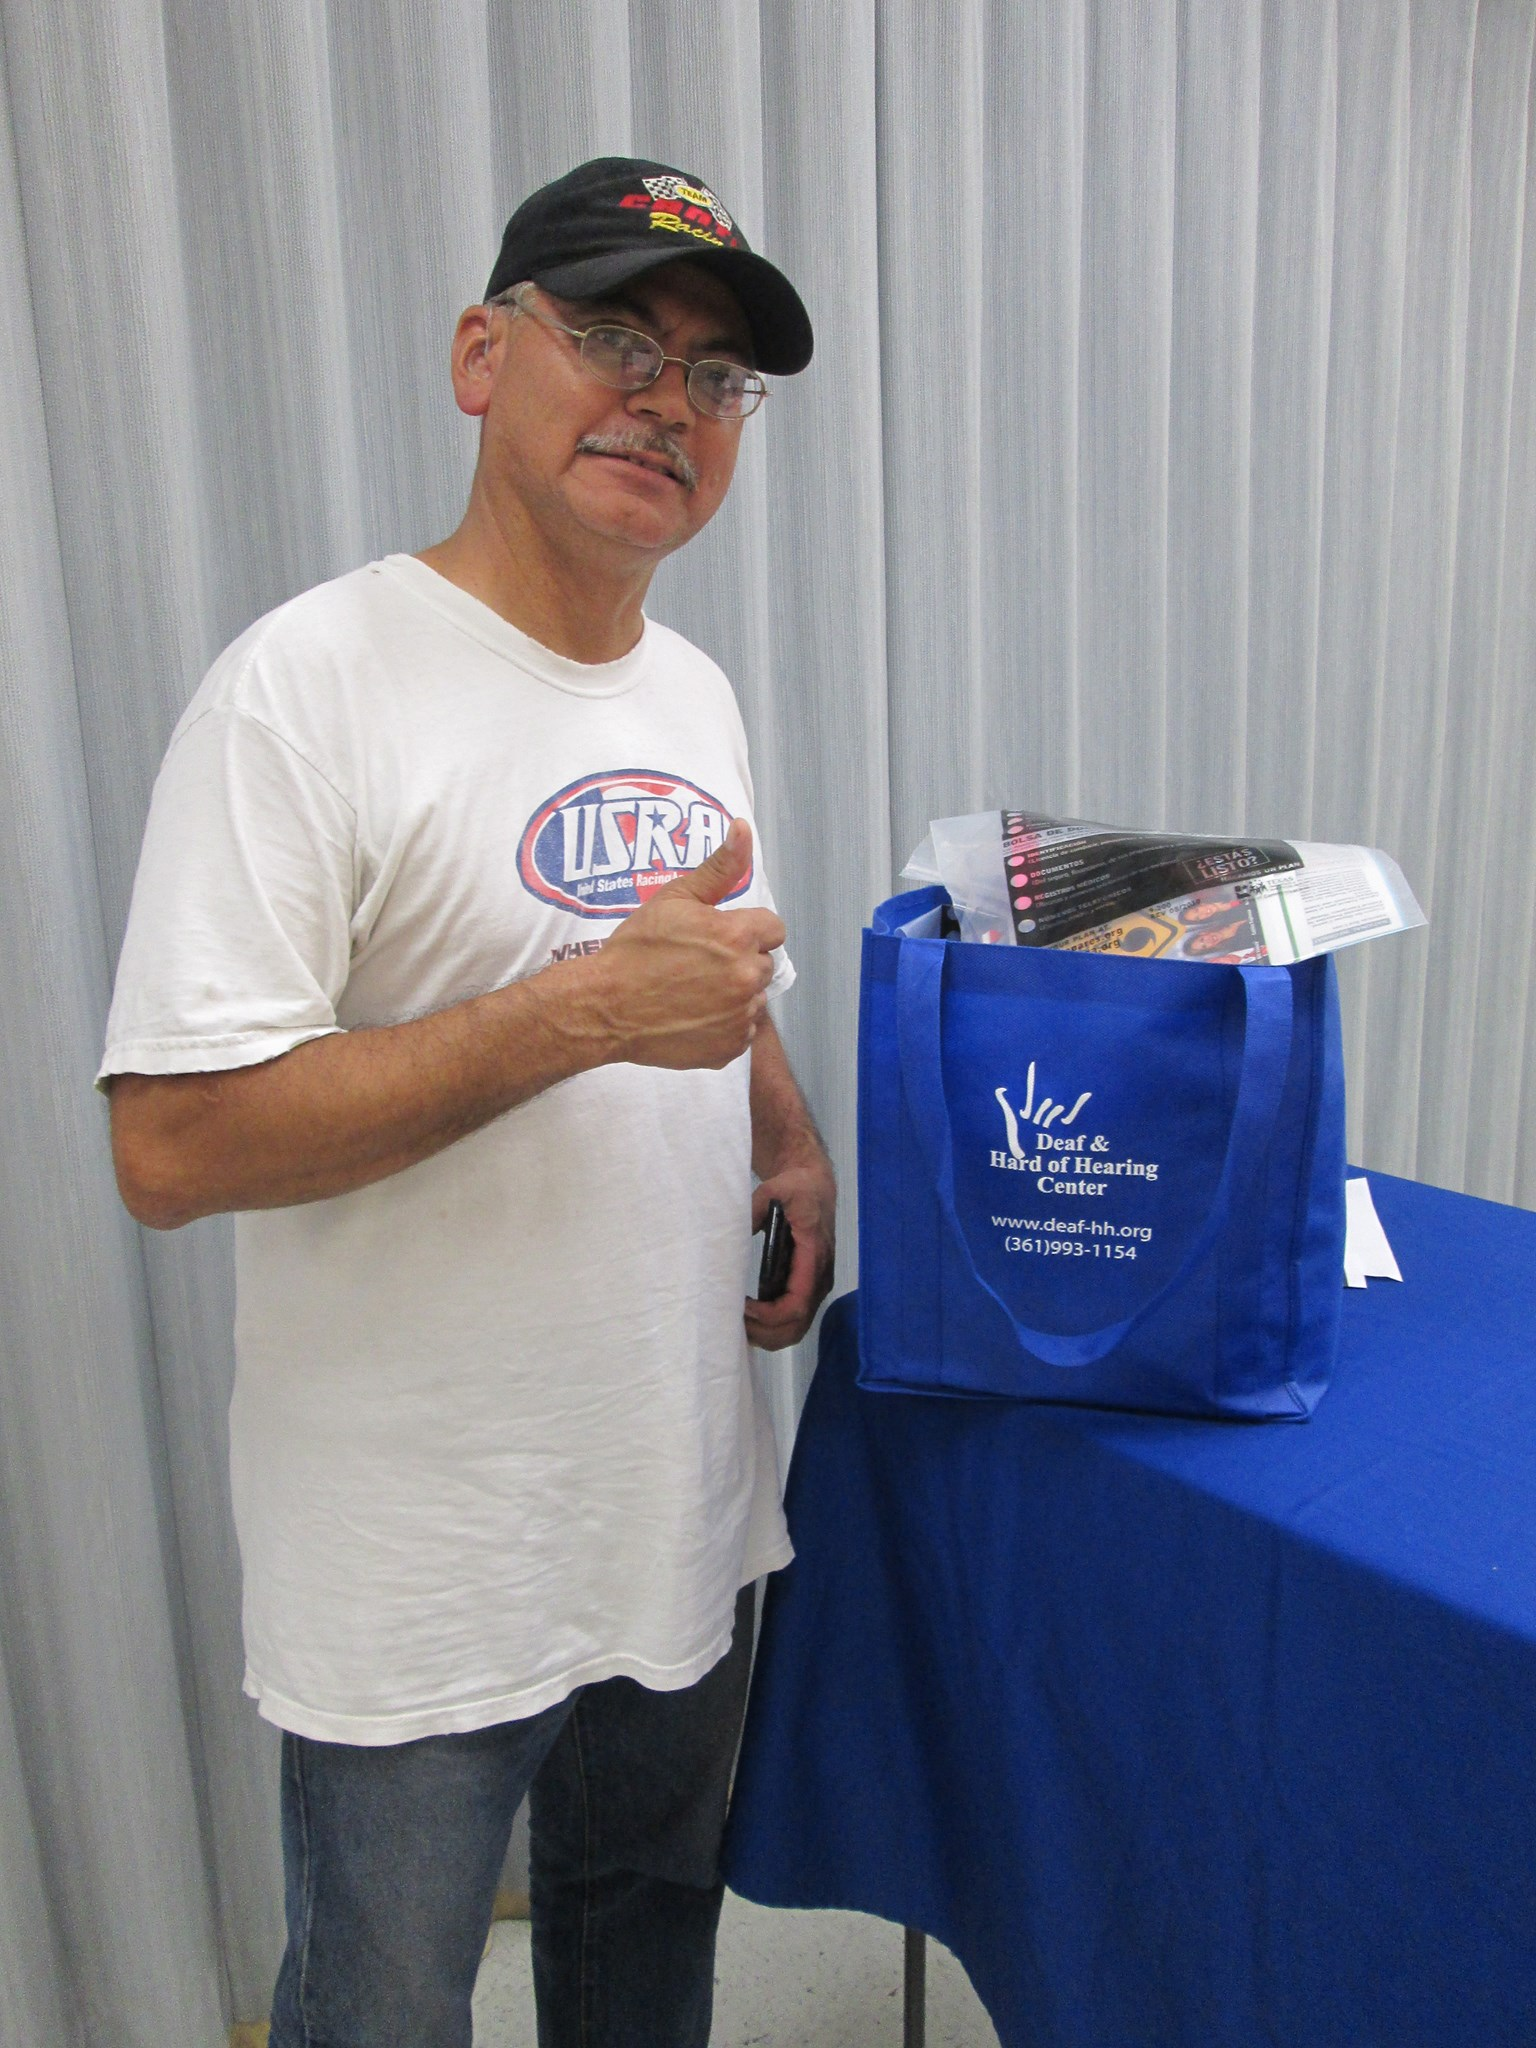 A male looks at the camera with a thumbs up. Next to him is a bag of goodies on a blue table.